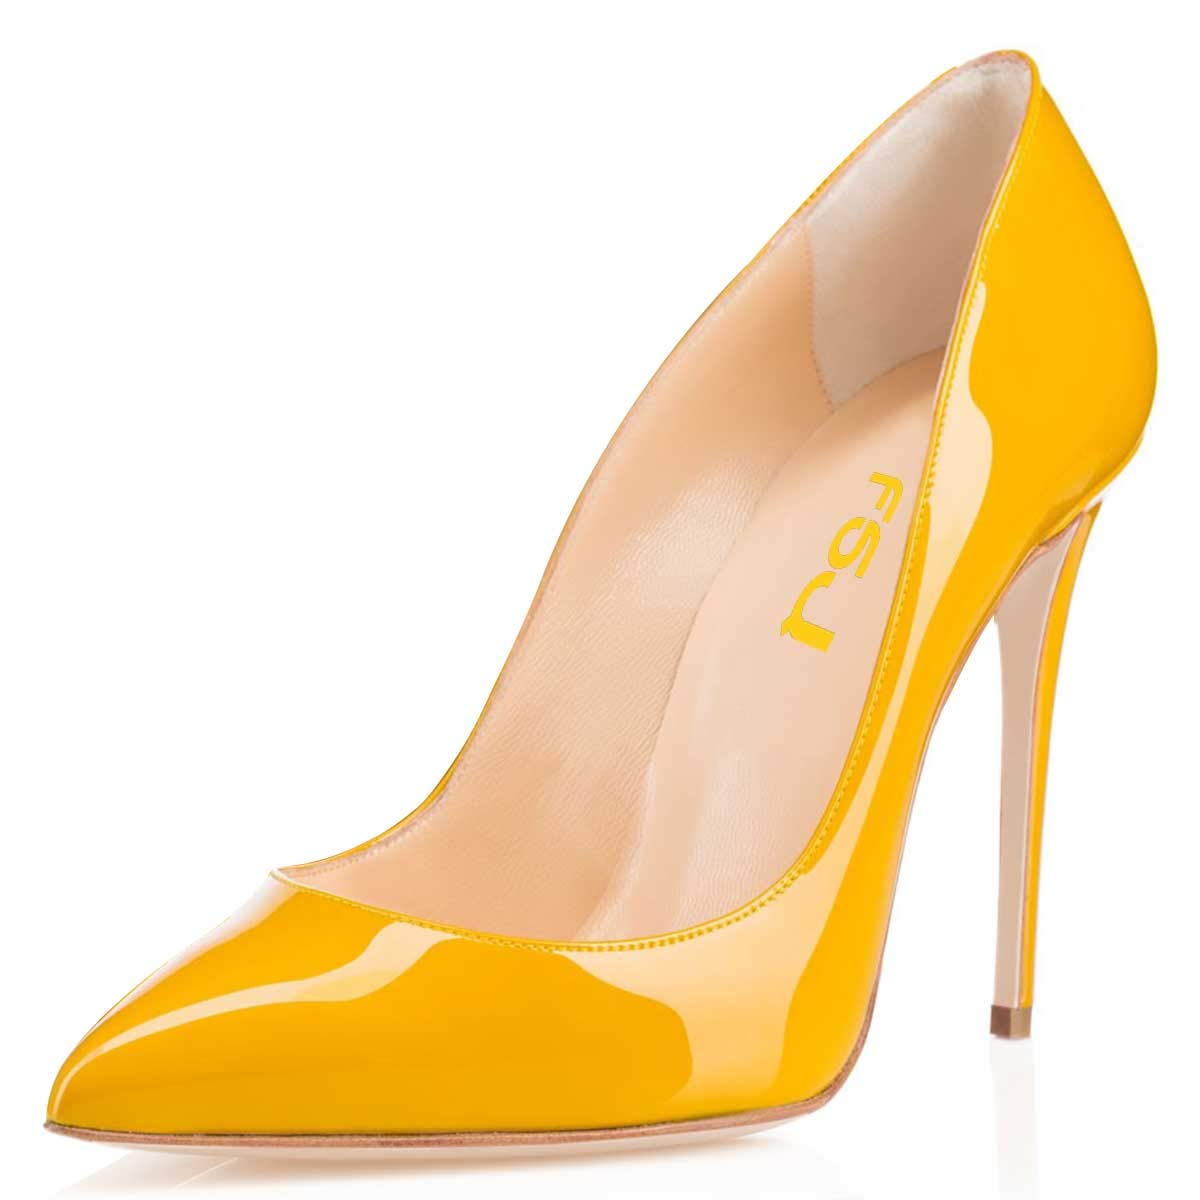 Yellow FSJ Formal Pumps Women Pointed Toe High Heel Stiletto Dress Party shoes Size 4-15 US